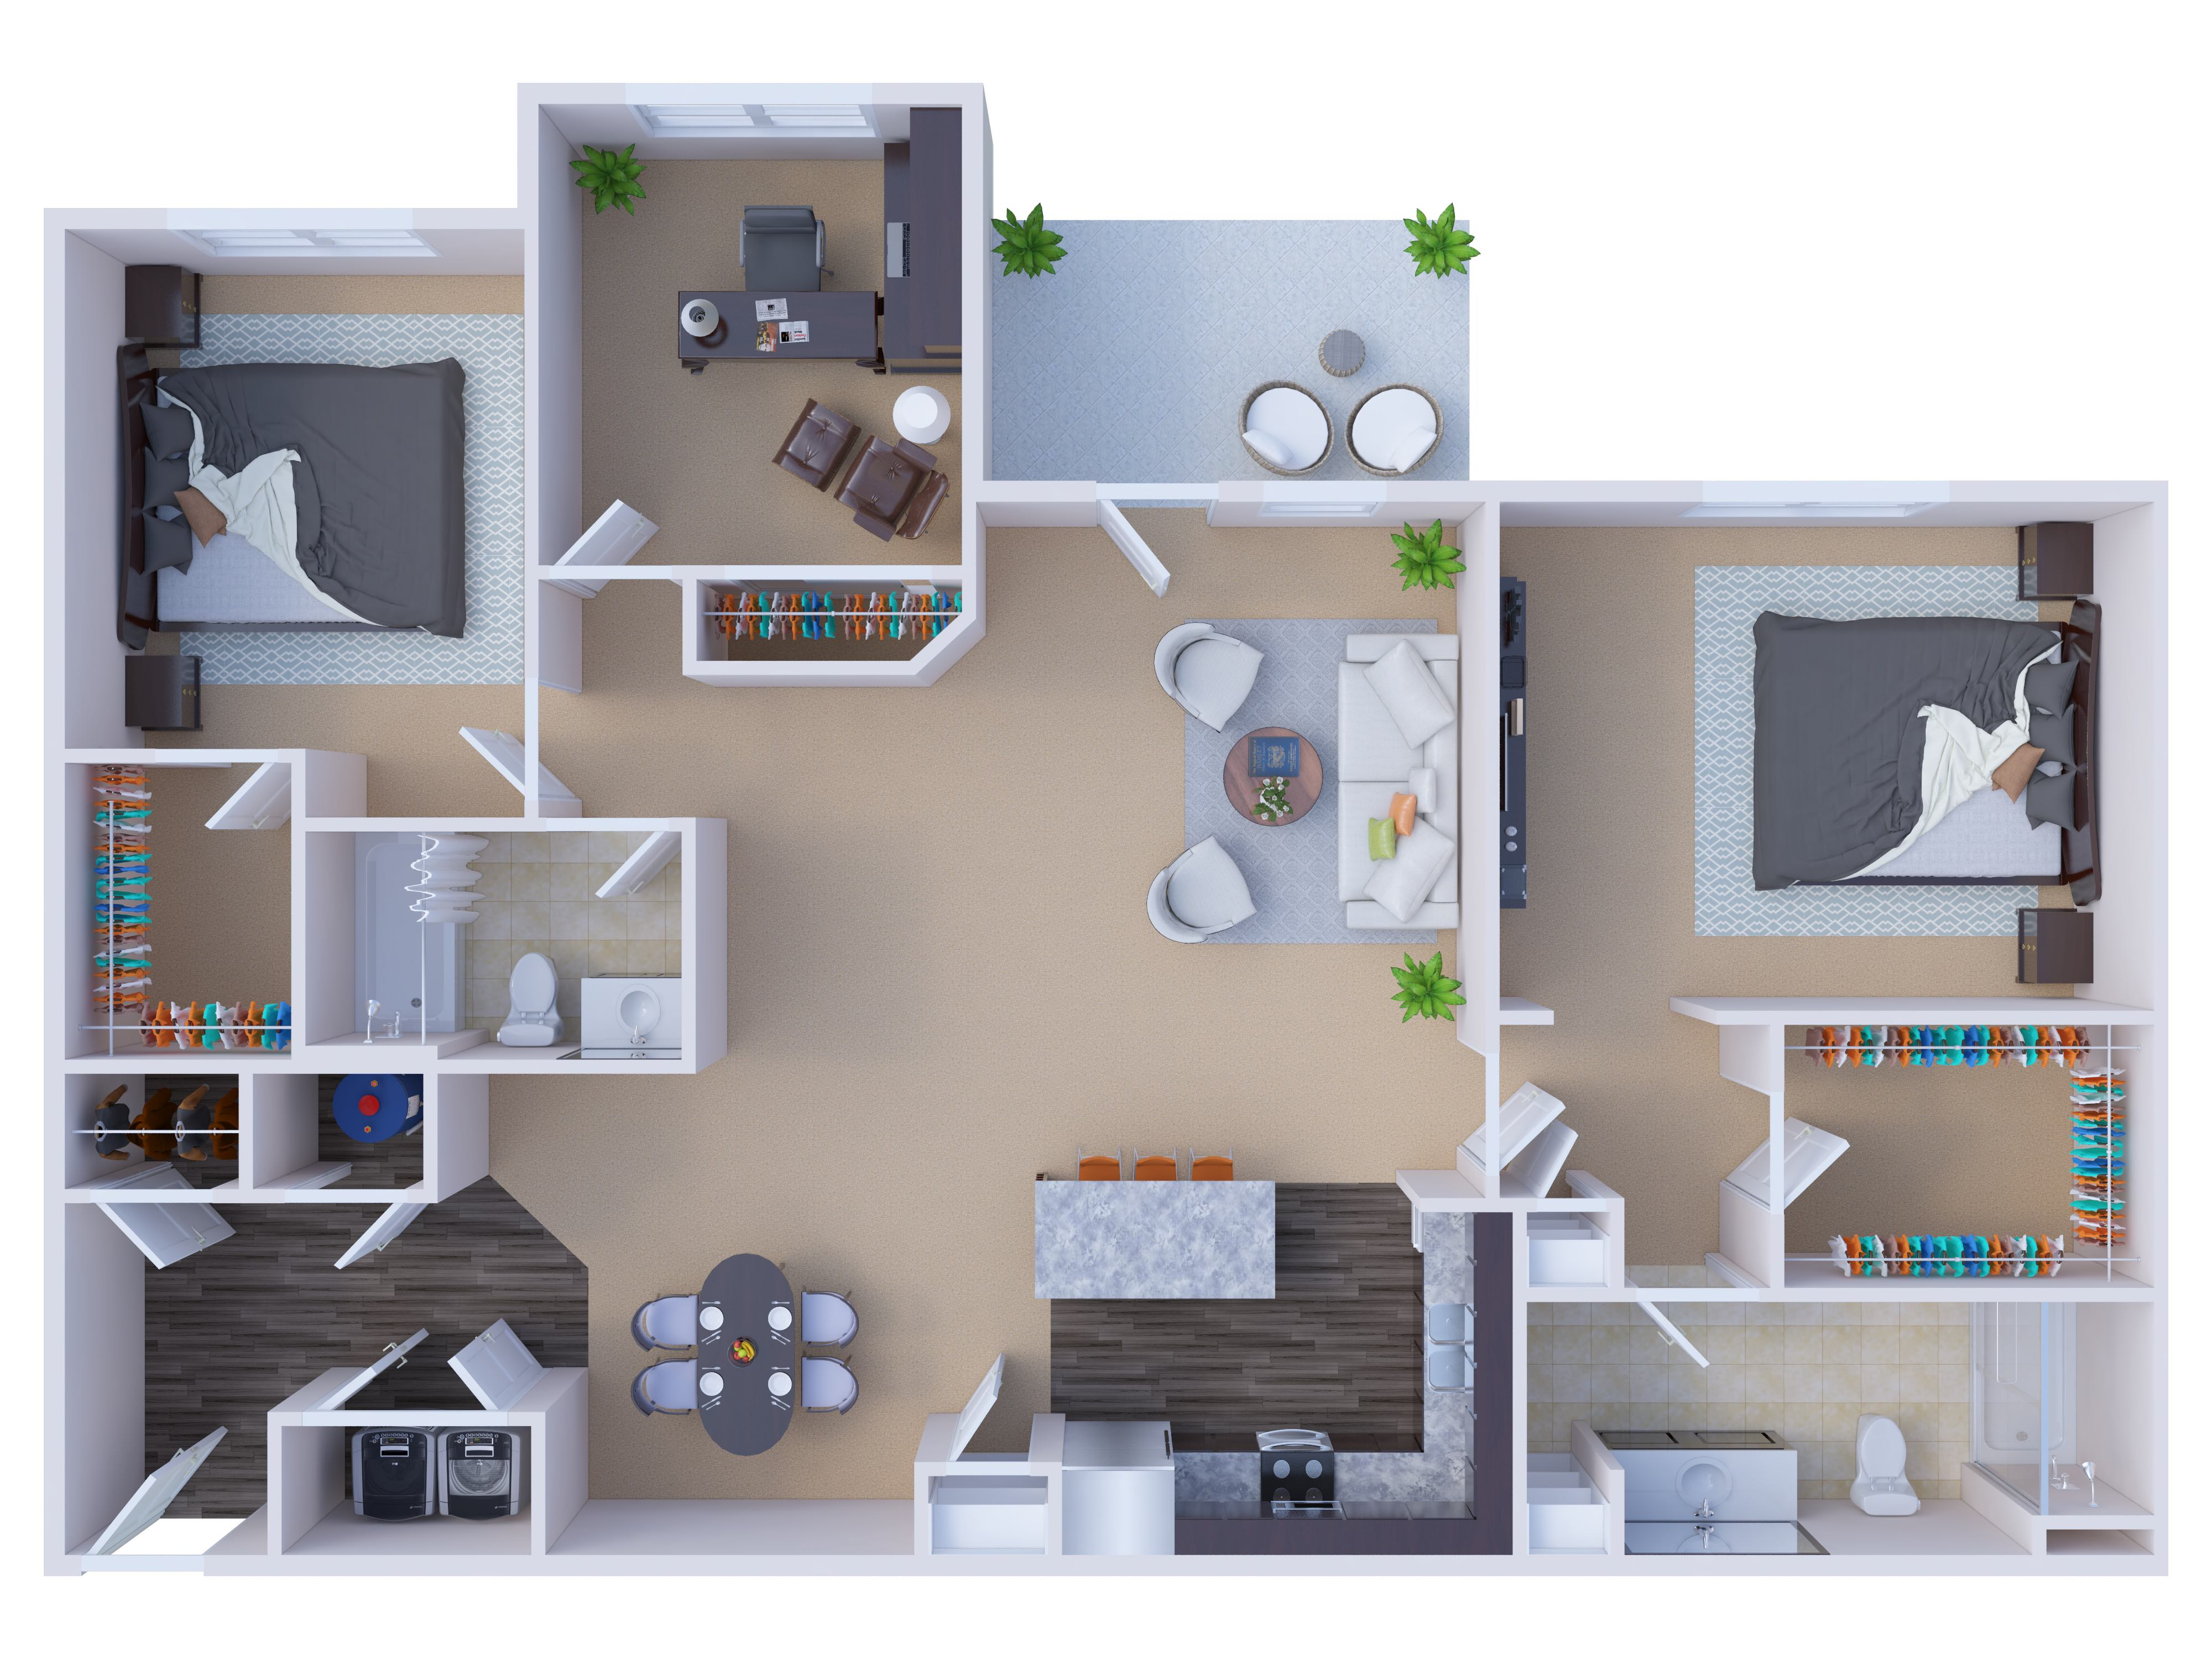 Floorplan - Weston image